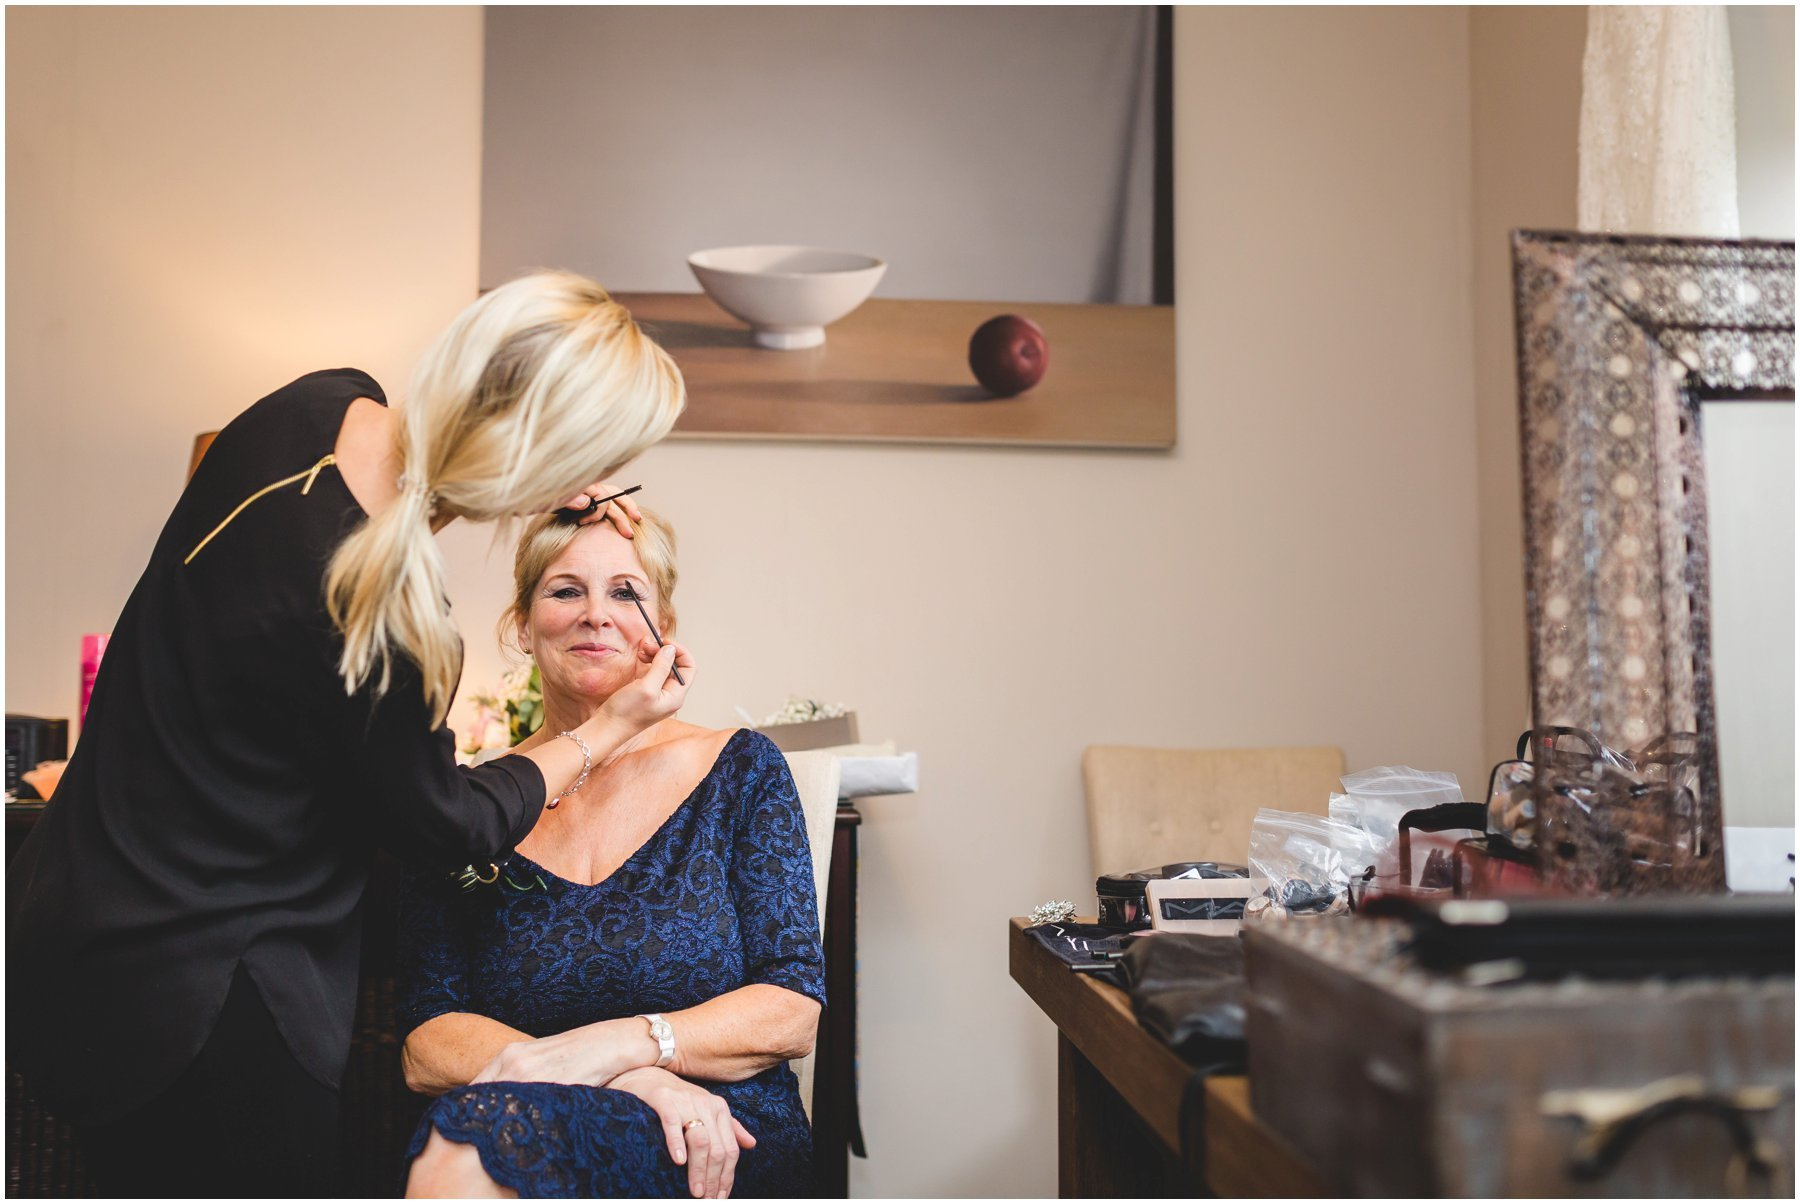 THE NORFOLK MEAD HOTEL WEDDING - DAVID AND SAMANTHA - NORWICH WEDDING PHOTOGRAPHER 6